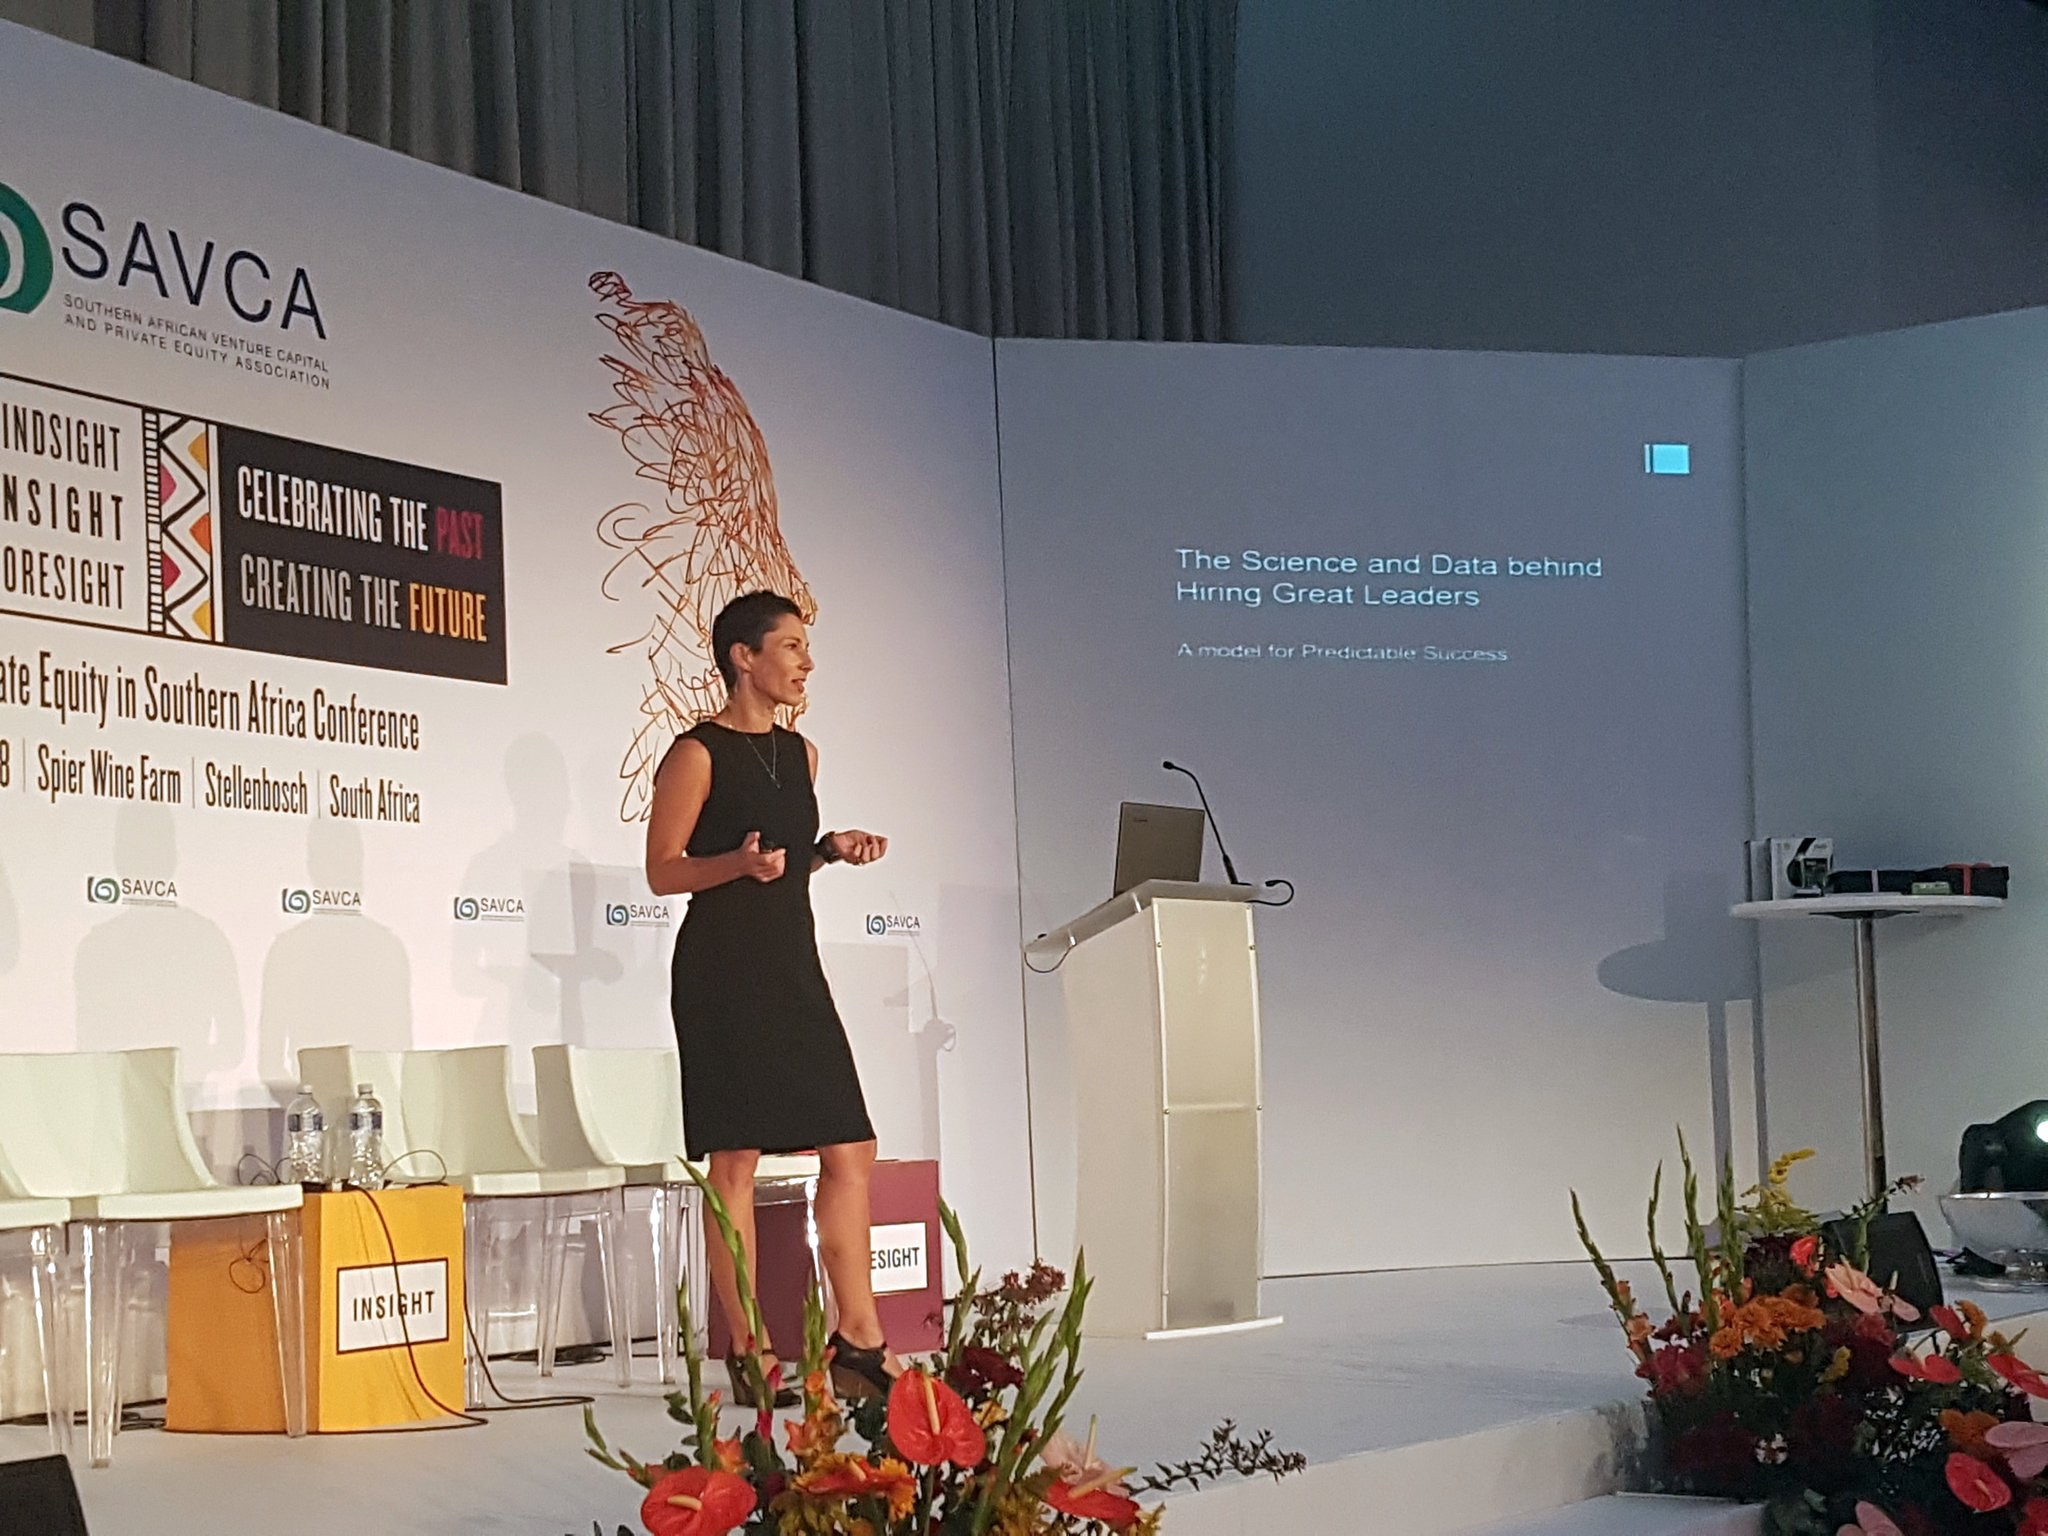 The science & data behind hiring great leaders – SAVCA Conference